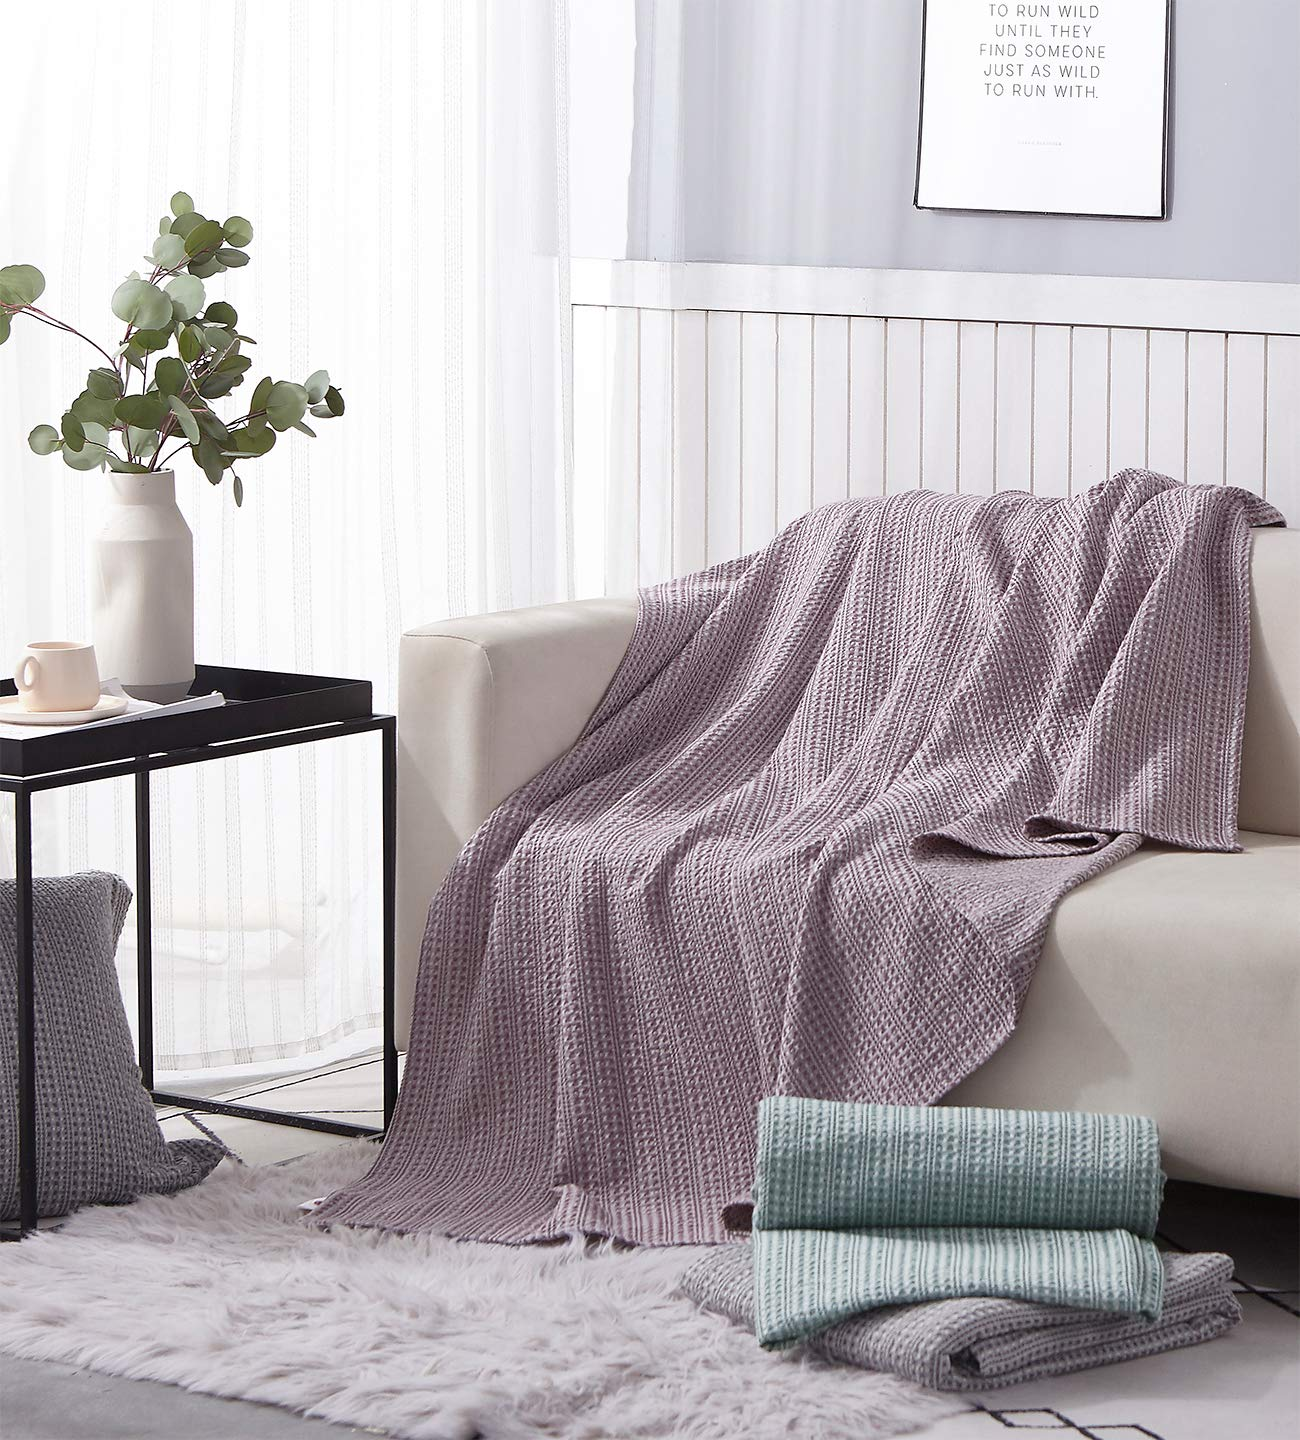 PHF 100% Cotton Bed Blanket Yarn Dyed Waffle Weave Bed Home Decor for Winter Queen Size Pale Purple